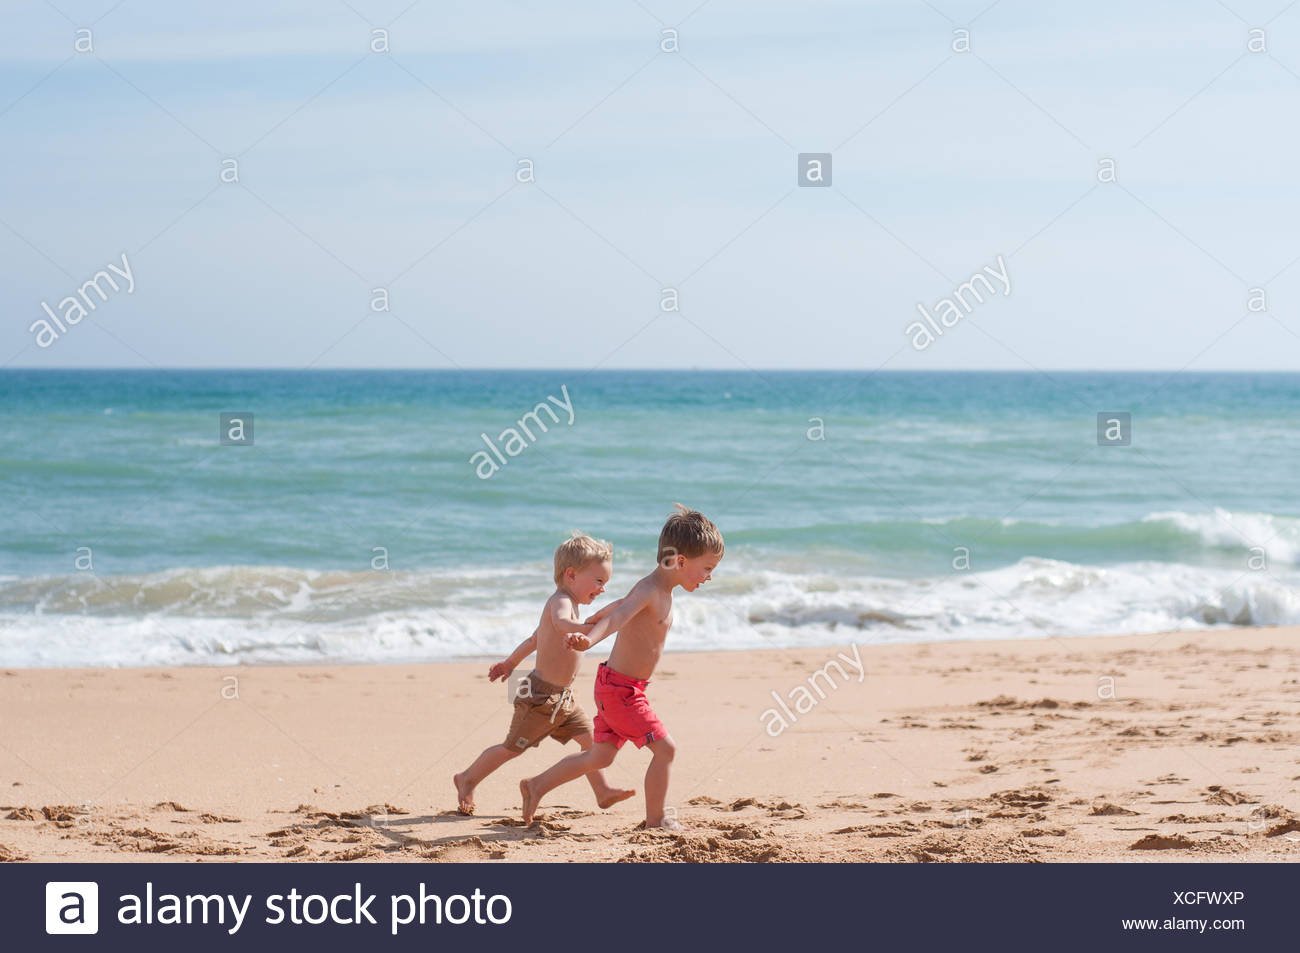 Two boys running along the beach - Stock Image